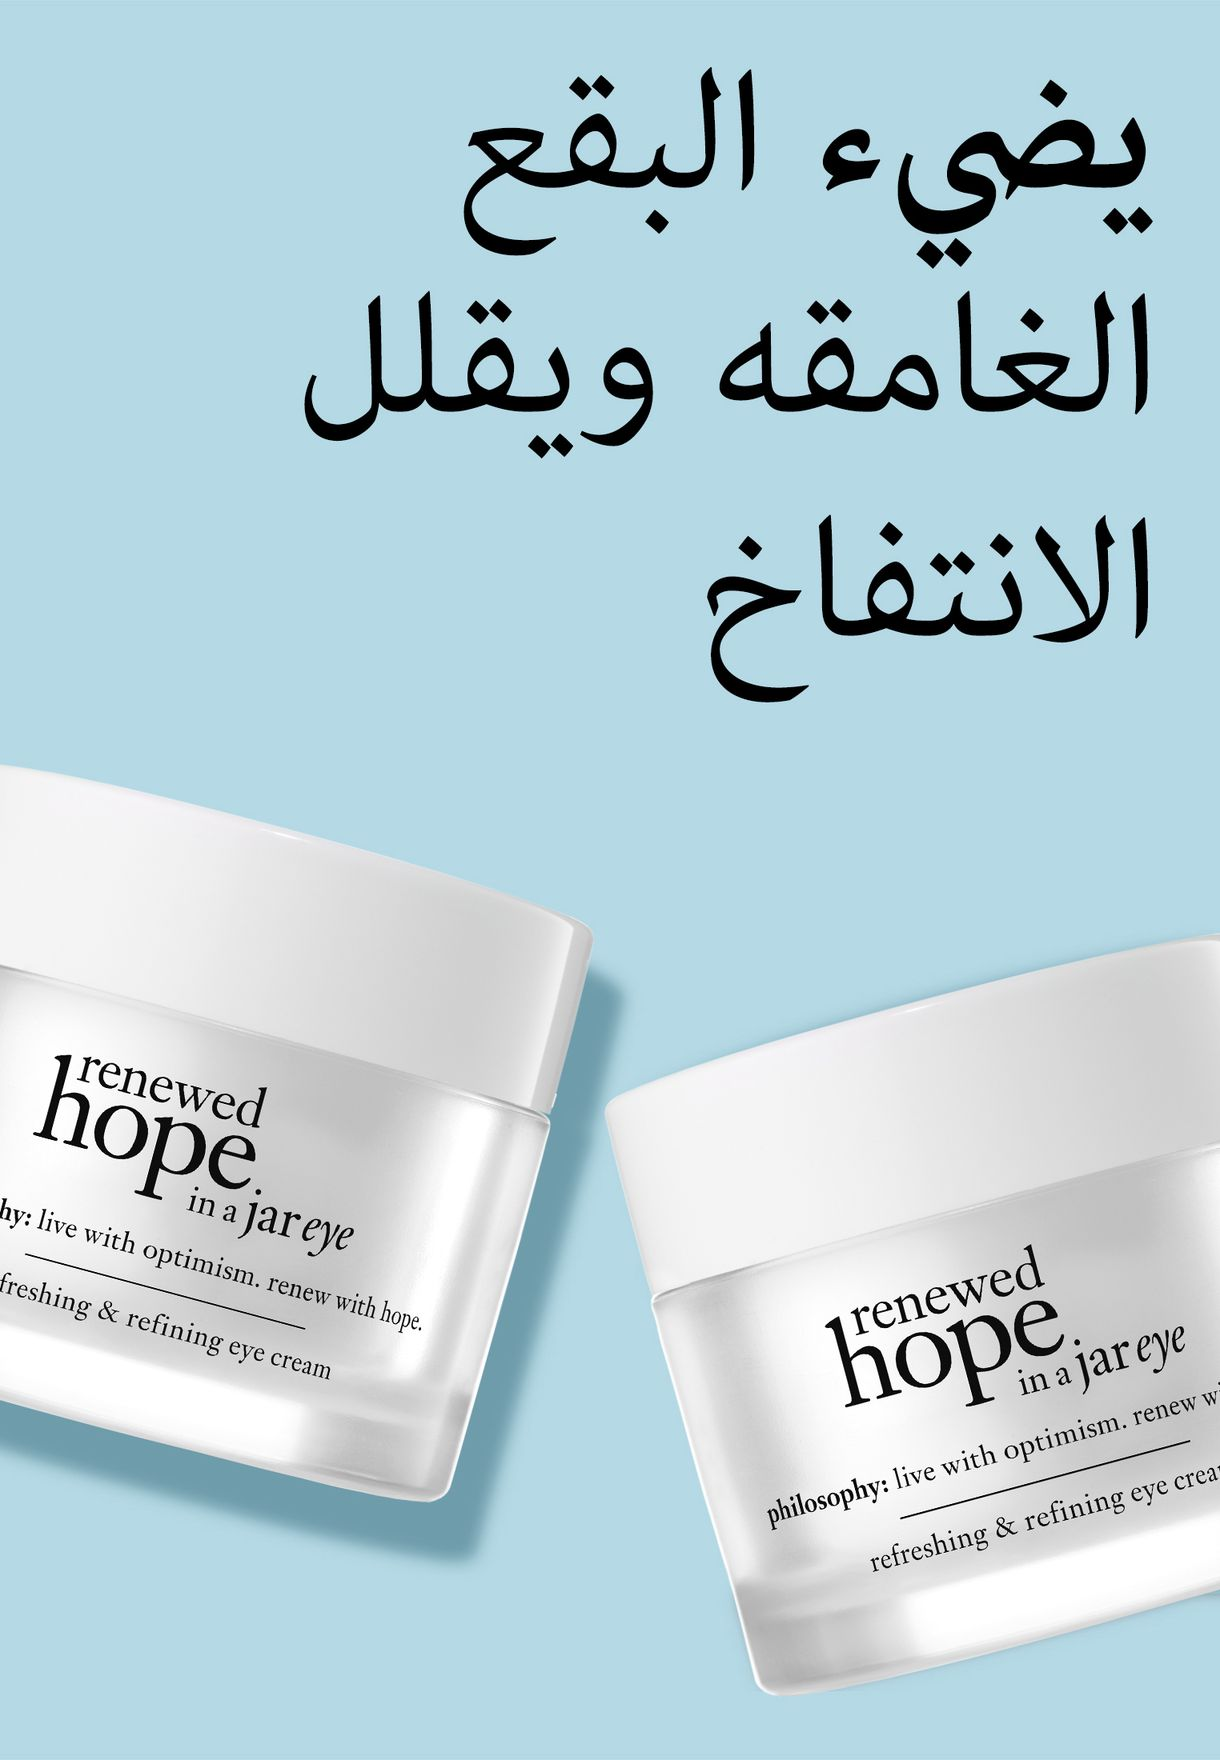 Renewed Hope In A Jar Eye Refreshing & Refining Eye Cream